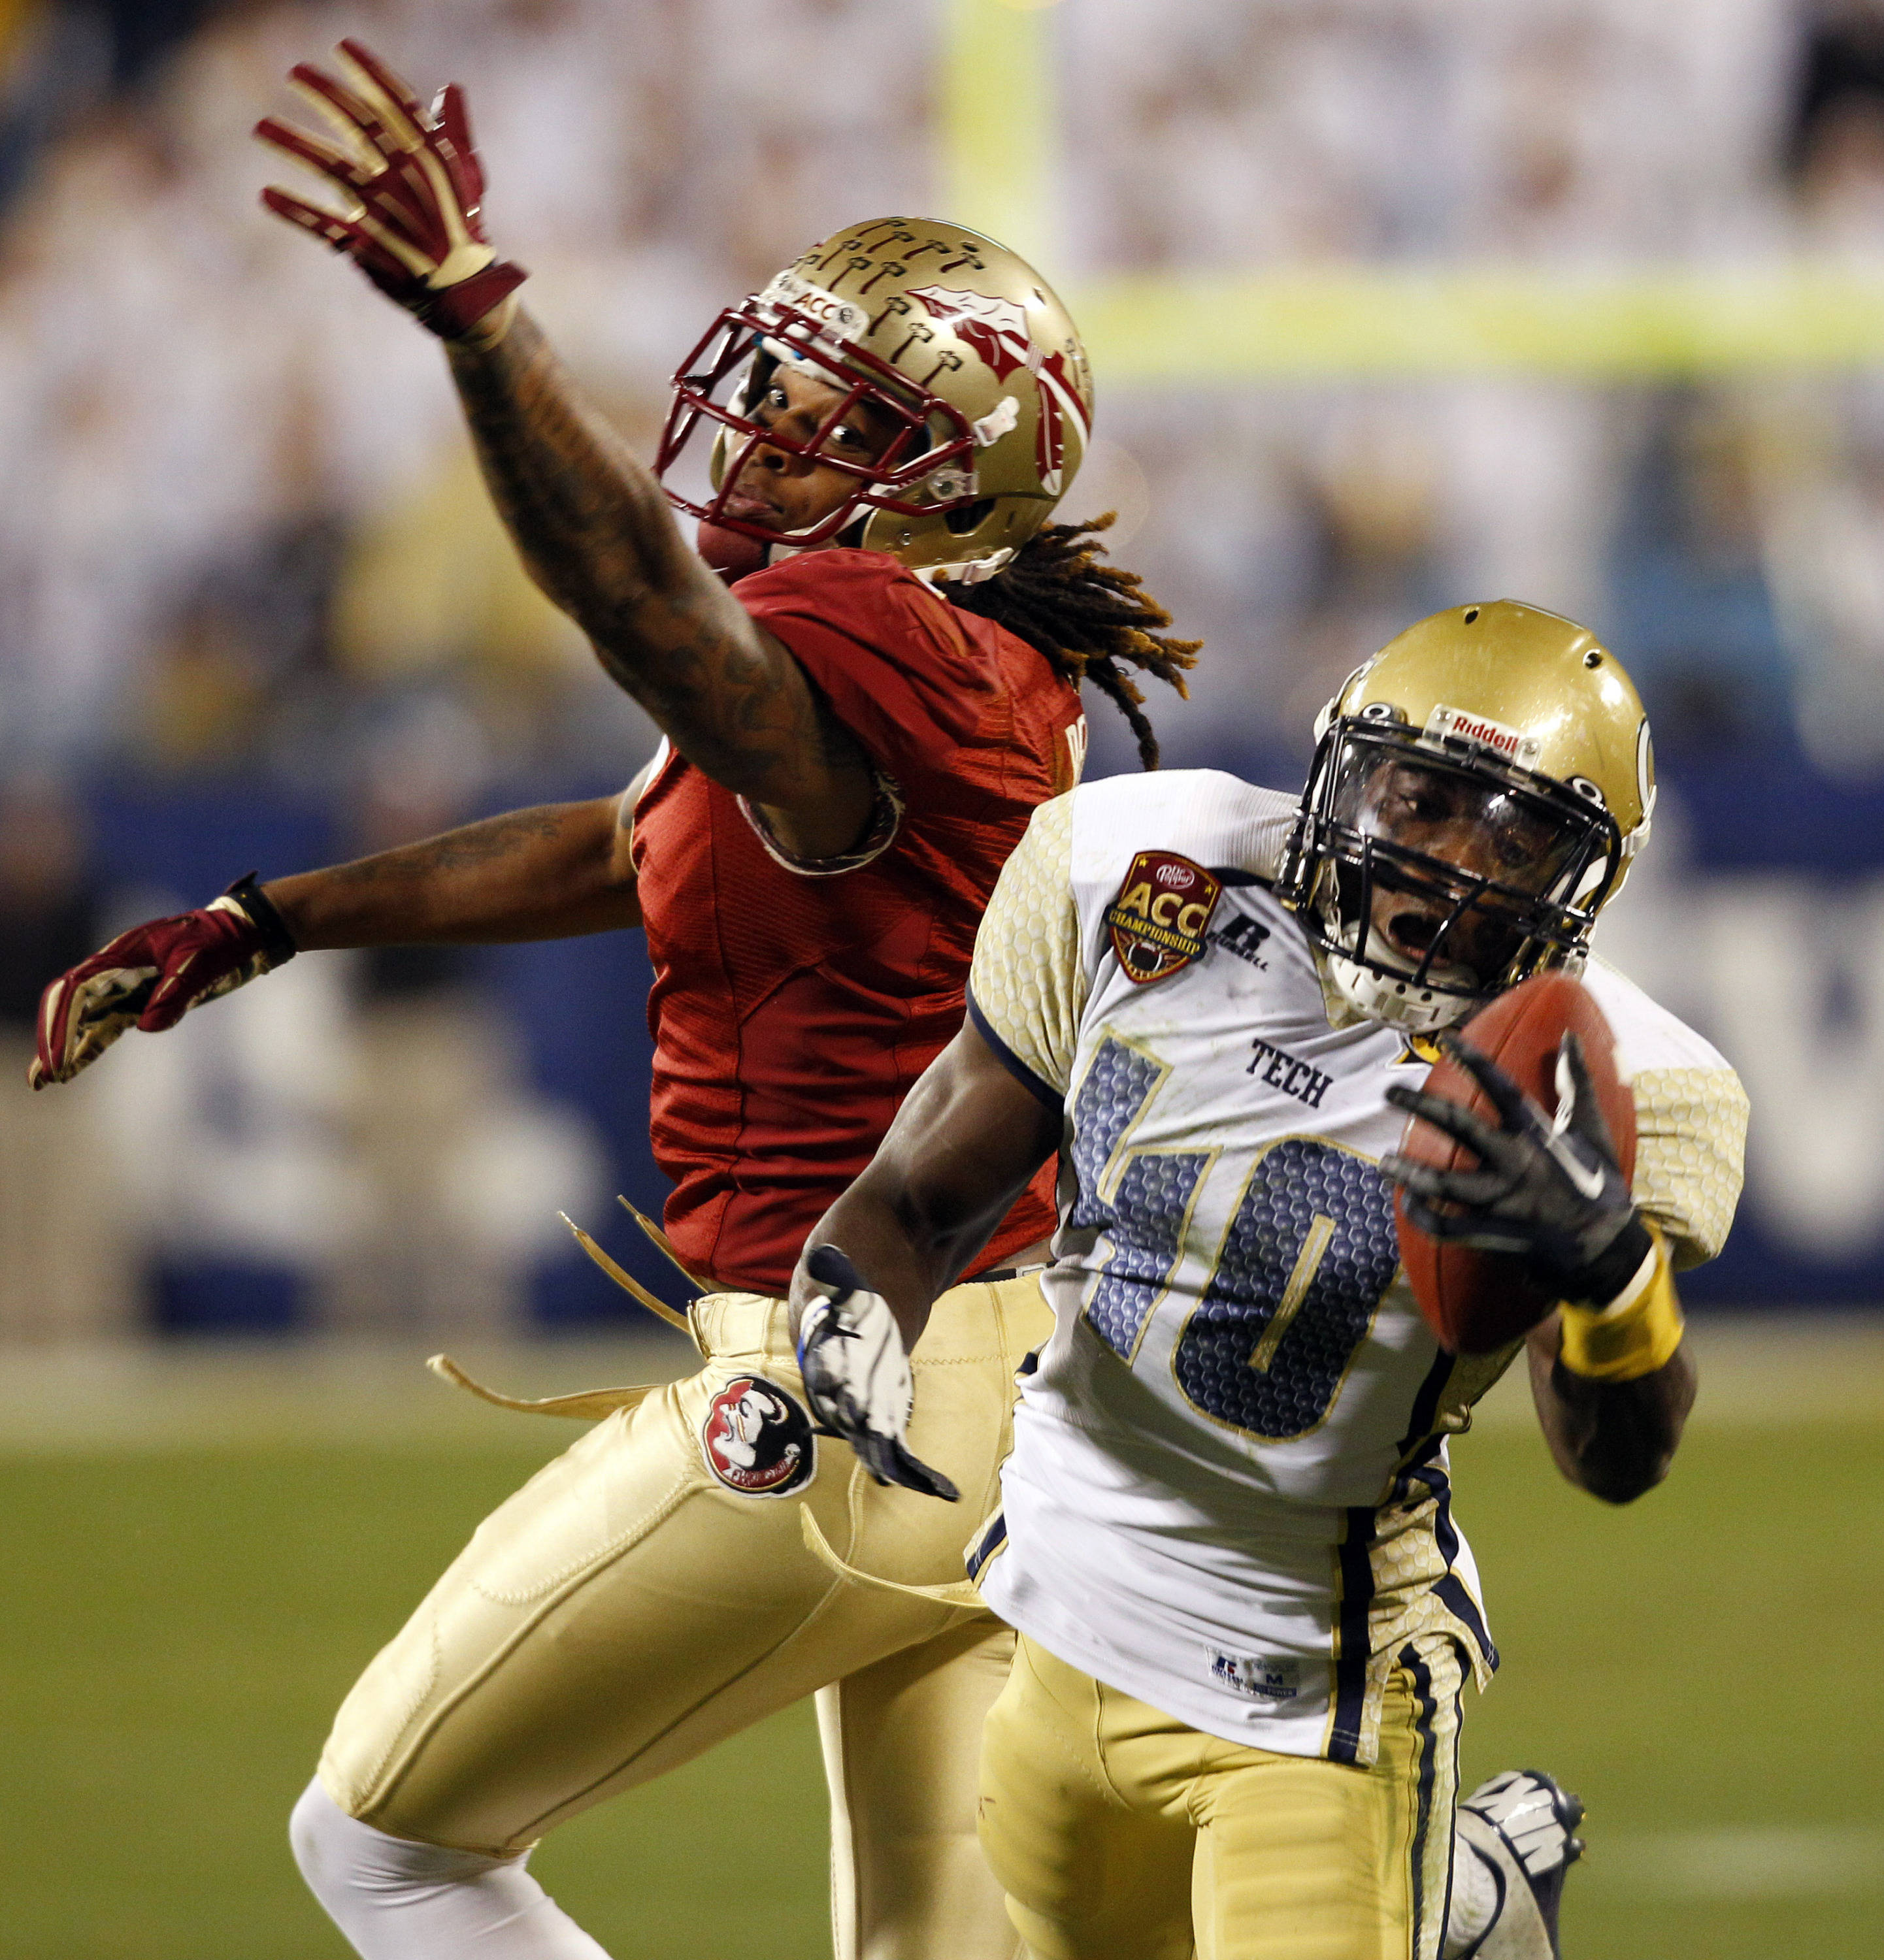 Georgia Tech's Jemea Thomas (40) intercepts a pass intended for Florida State's Kelvin Benjamin during the second half of the Atlantic Coast Conference championship NCAA college football game in Charlotte, N.C., Saturday, Dec. 1, 2012. Florida State won 21-15. (AP Photo/Chuck Burton)